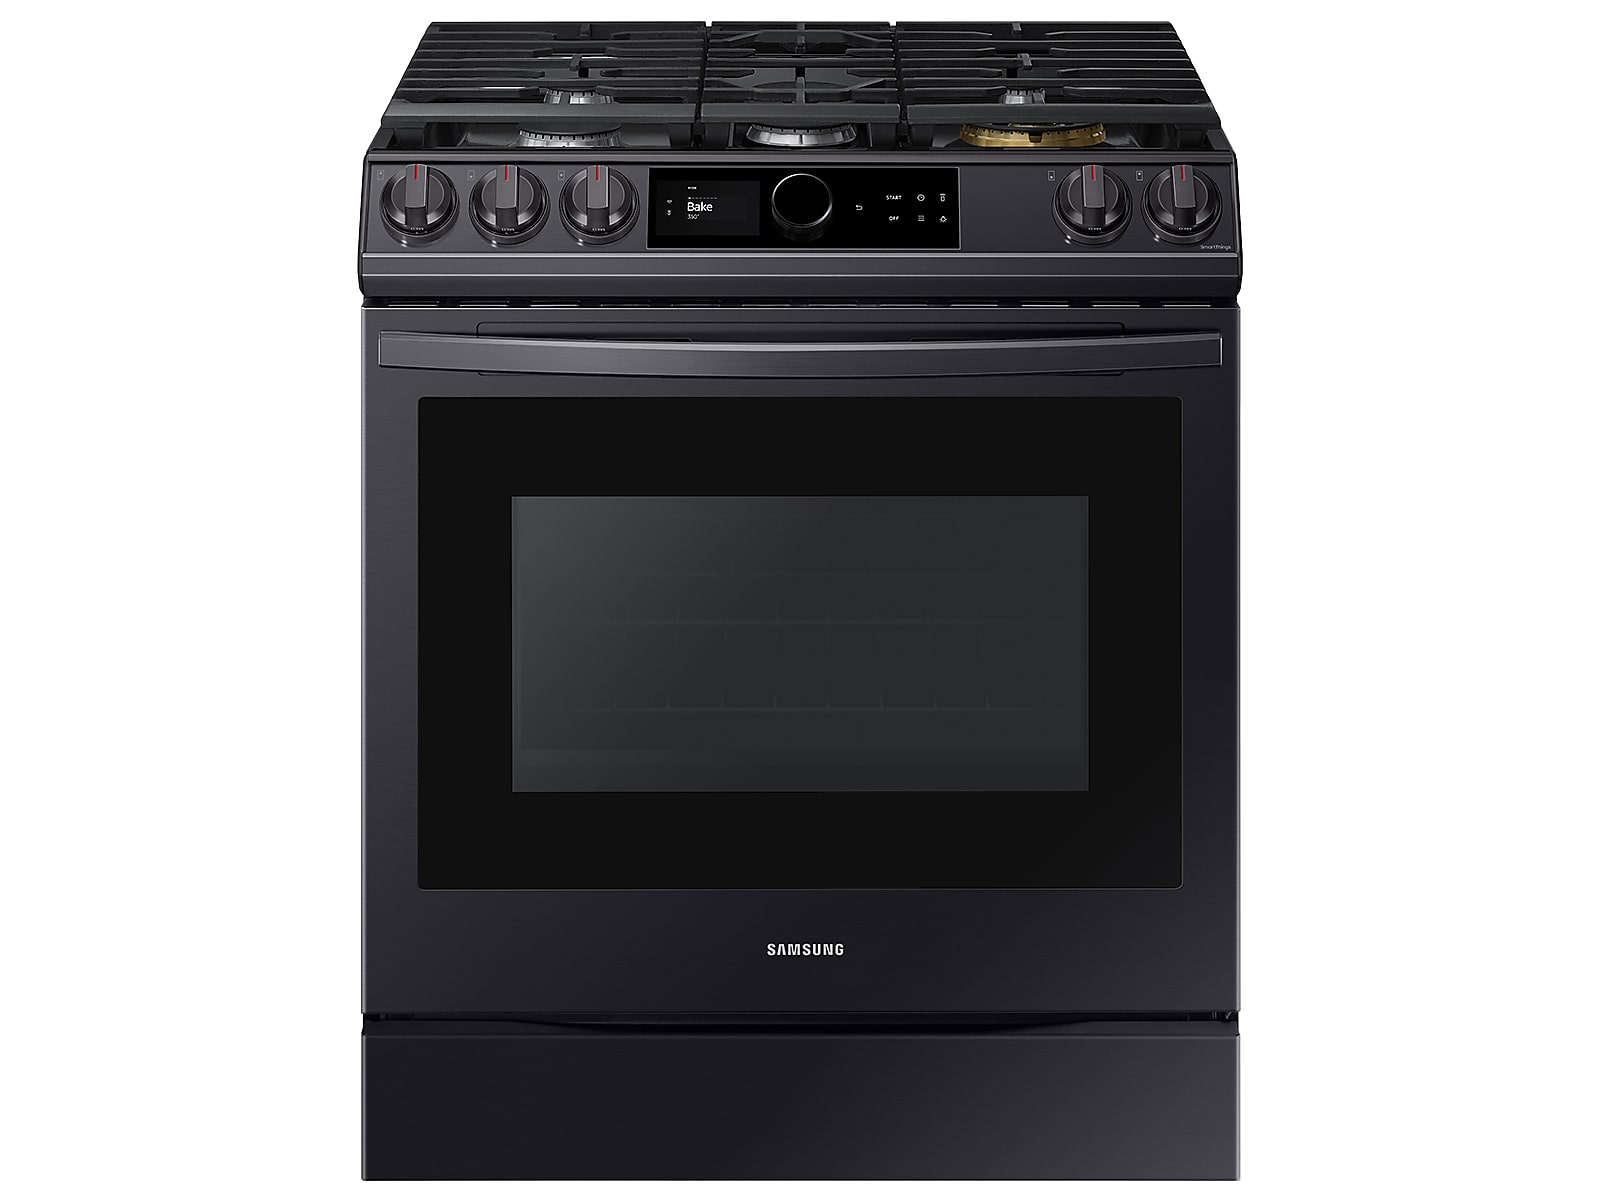 Samsung 6.0 cu ft. Smart Slide-in Gas Range with Smart Dial & Air Fry in Black Stainless Steel(NX60T8711SG/AA)